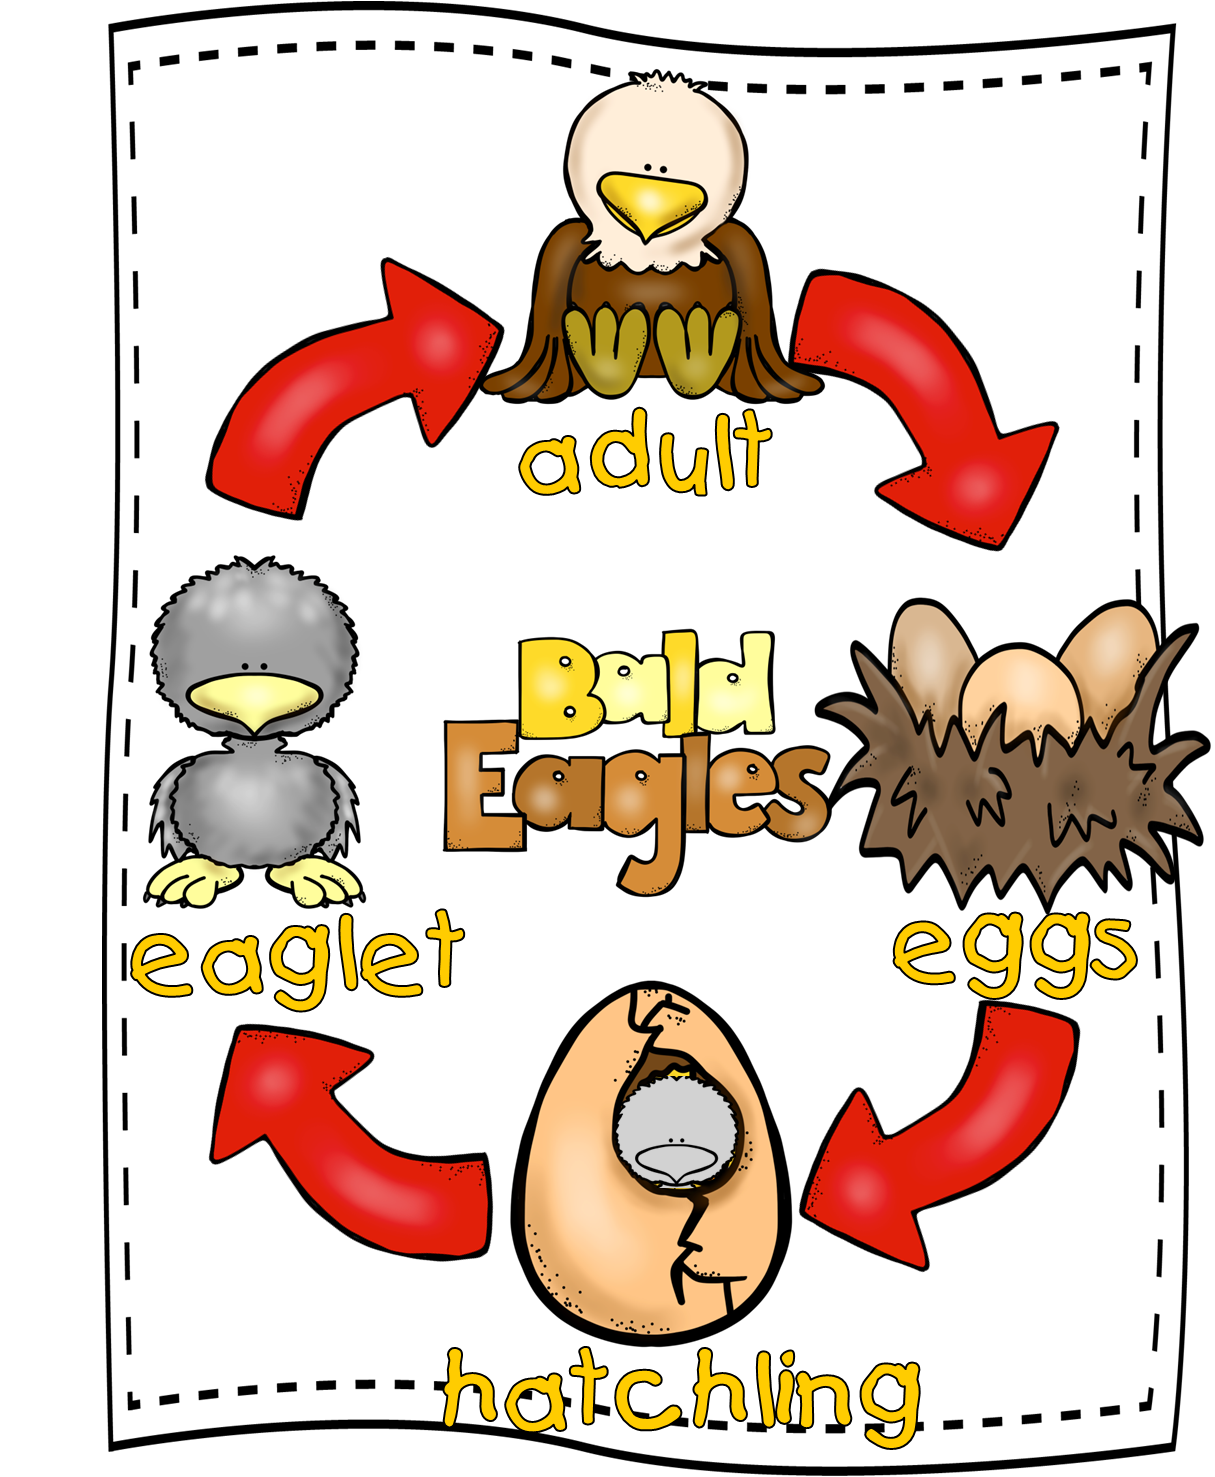 Wow clipart positive learning. Eagle life cycle mini